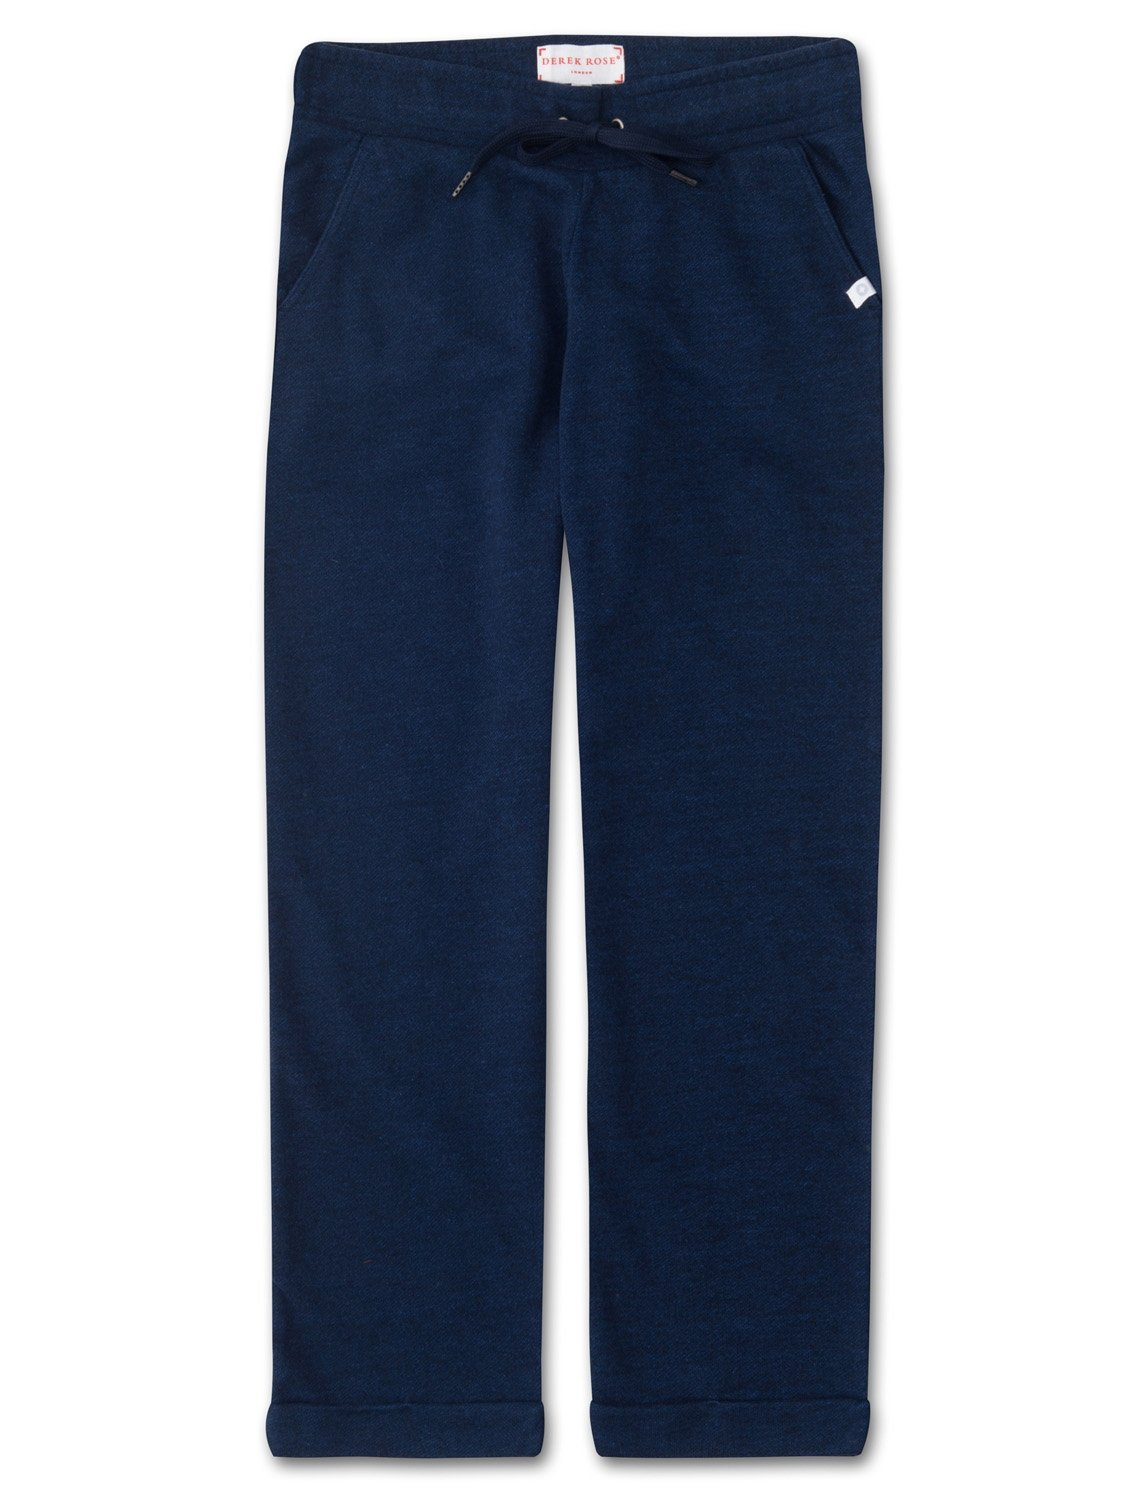 Women's Cropped Leisure Pant Devon Loopback Cotton Navy